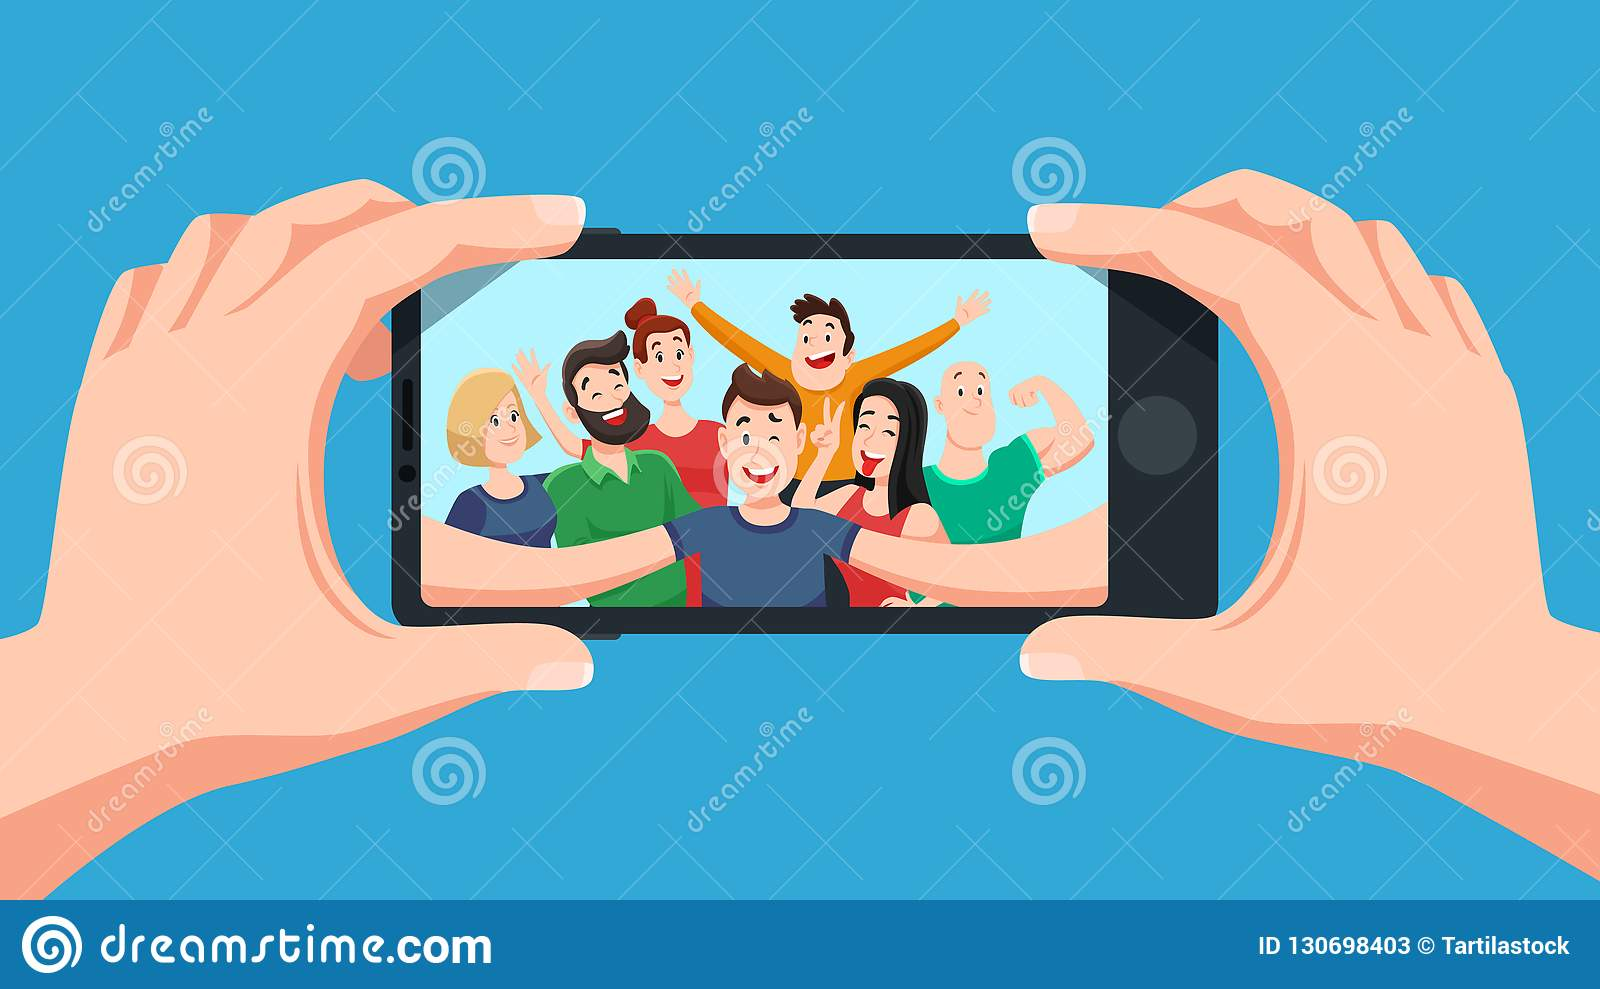 Group selfie on smartphone. Photo portrait of friendly youth team, friends make photos on phone camera cartoon vector